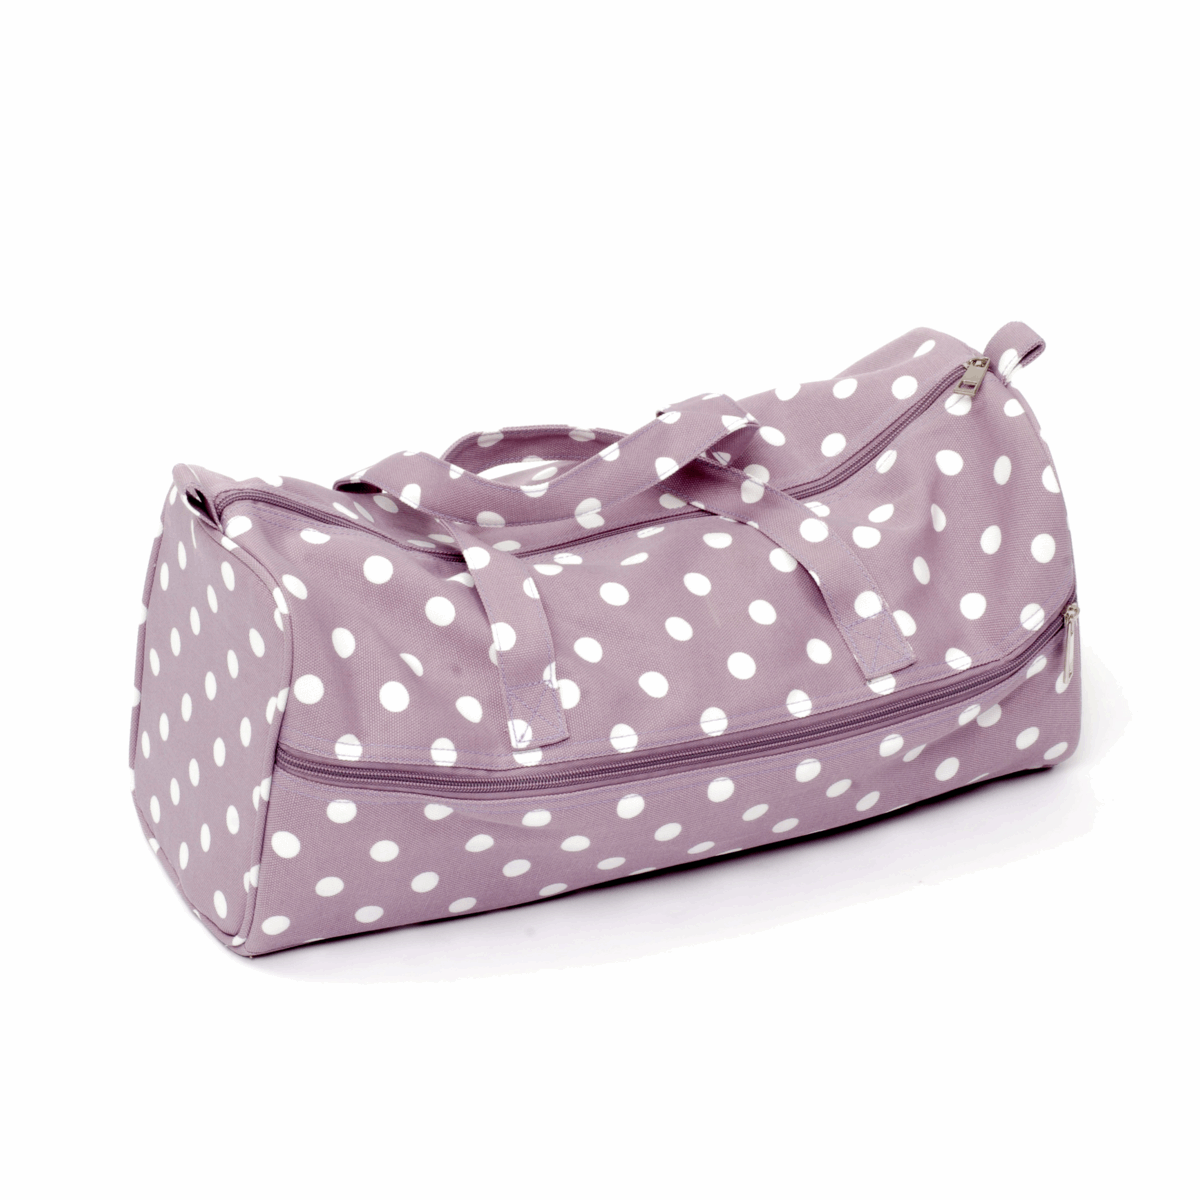 Picture of Knitting Bag: Mauve Spot: Pack of 3